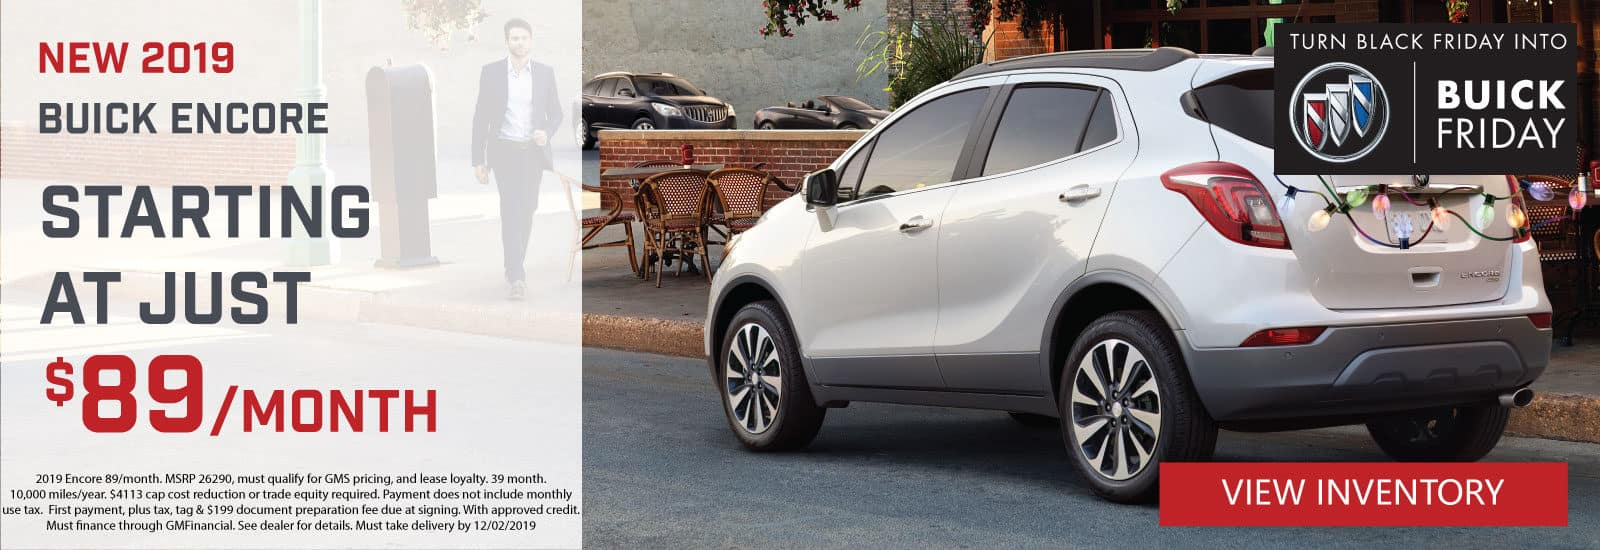 2019-Buick-Encore-Website-Slider-Banner-1600x550